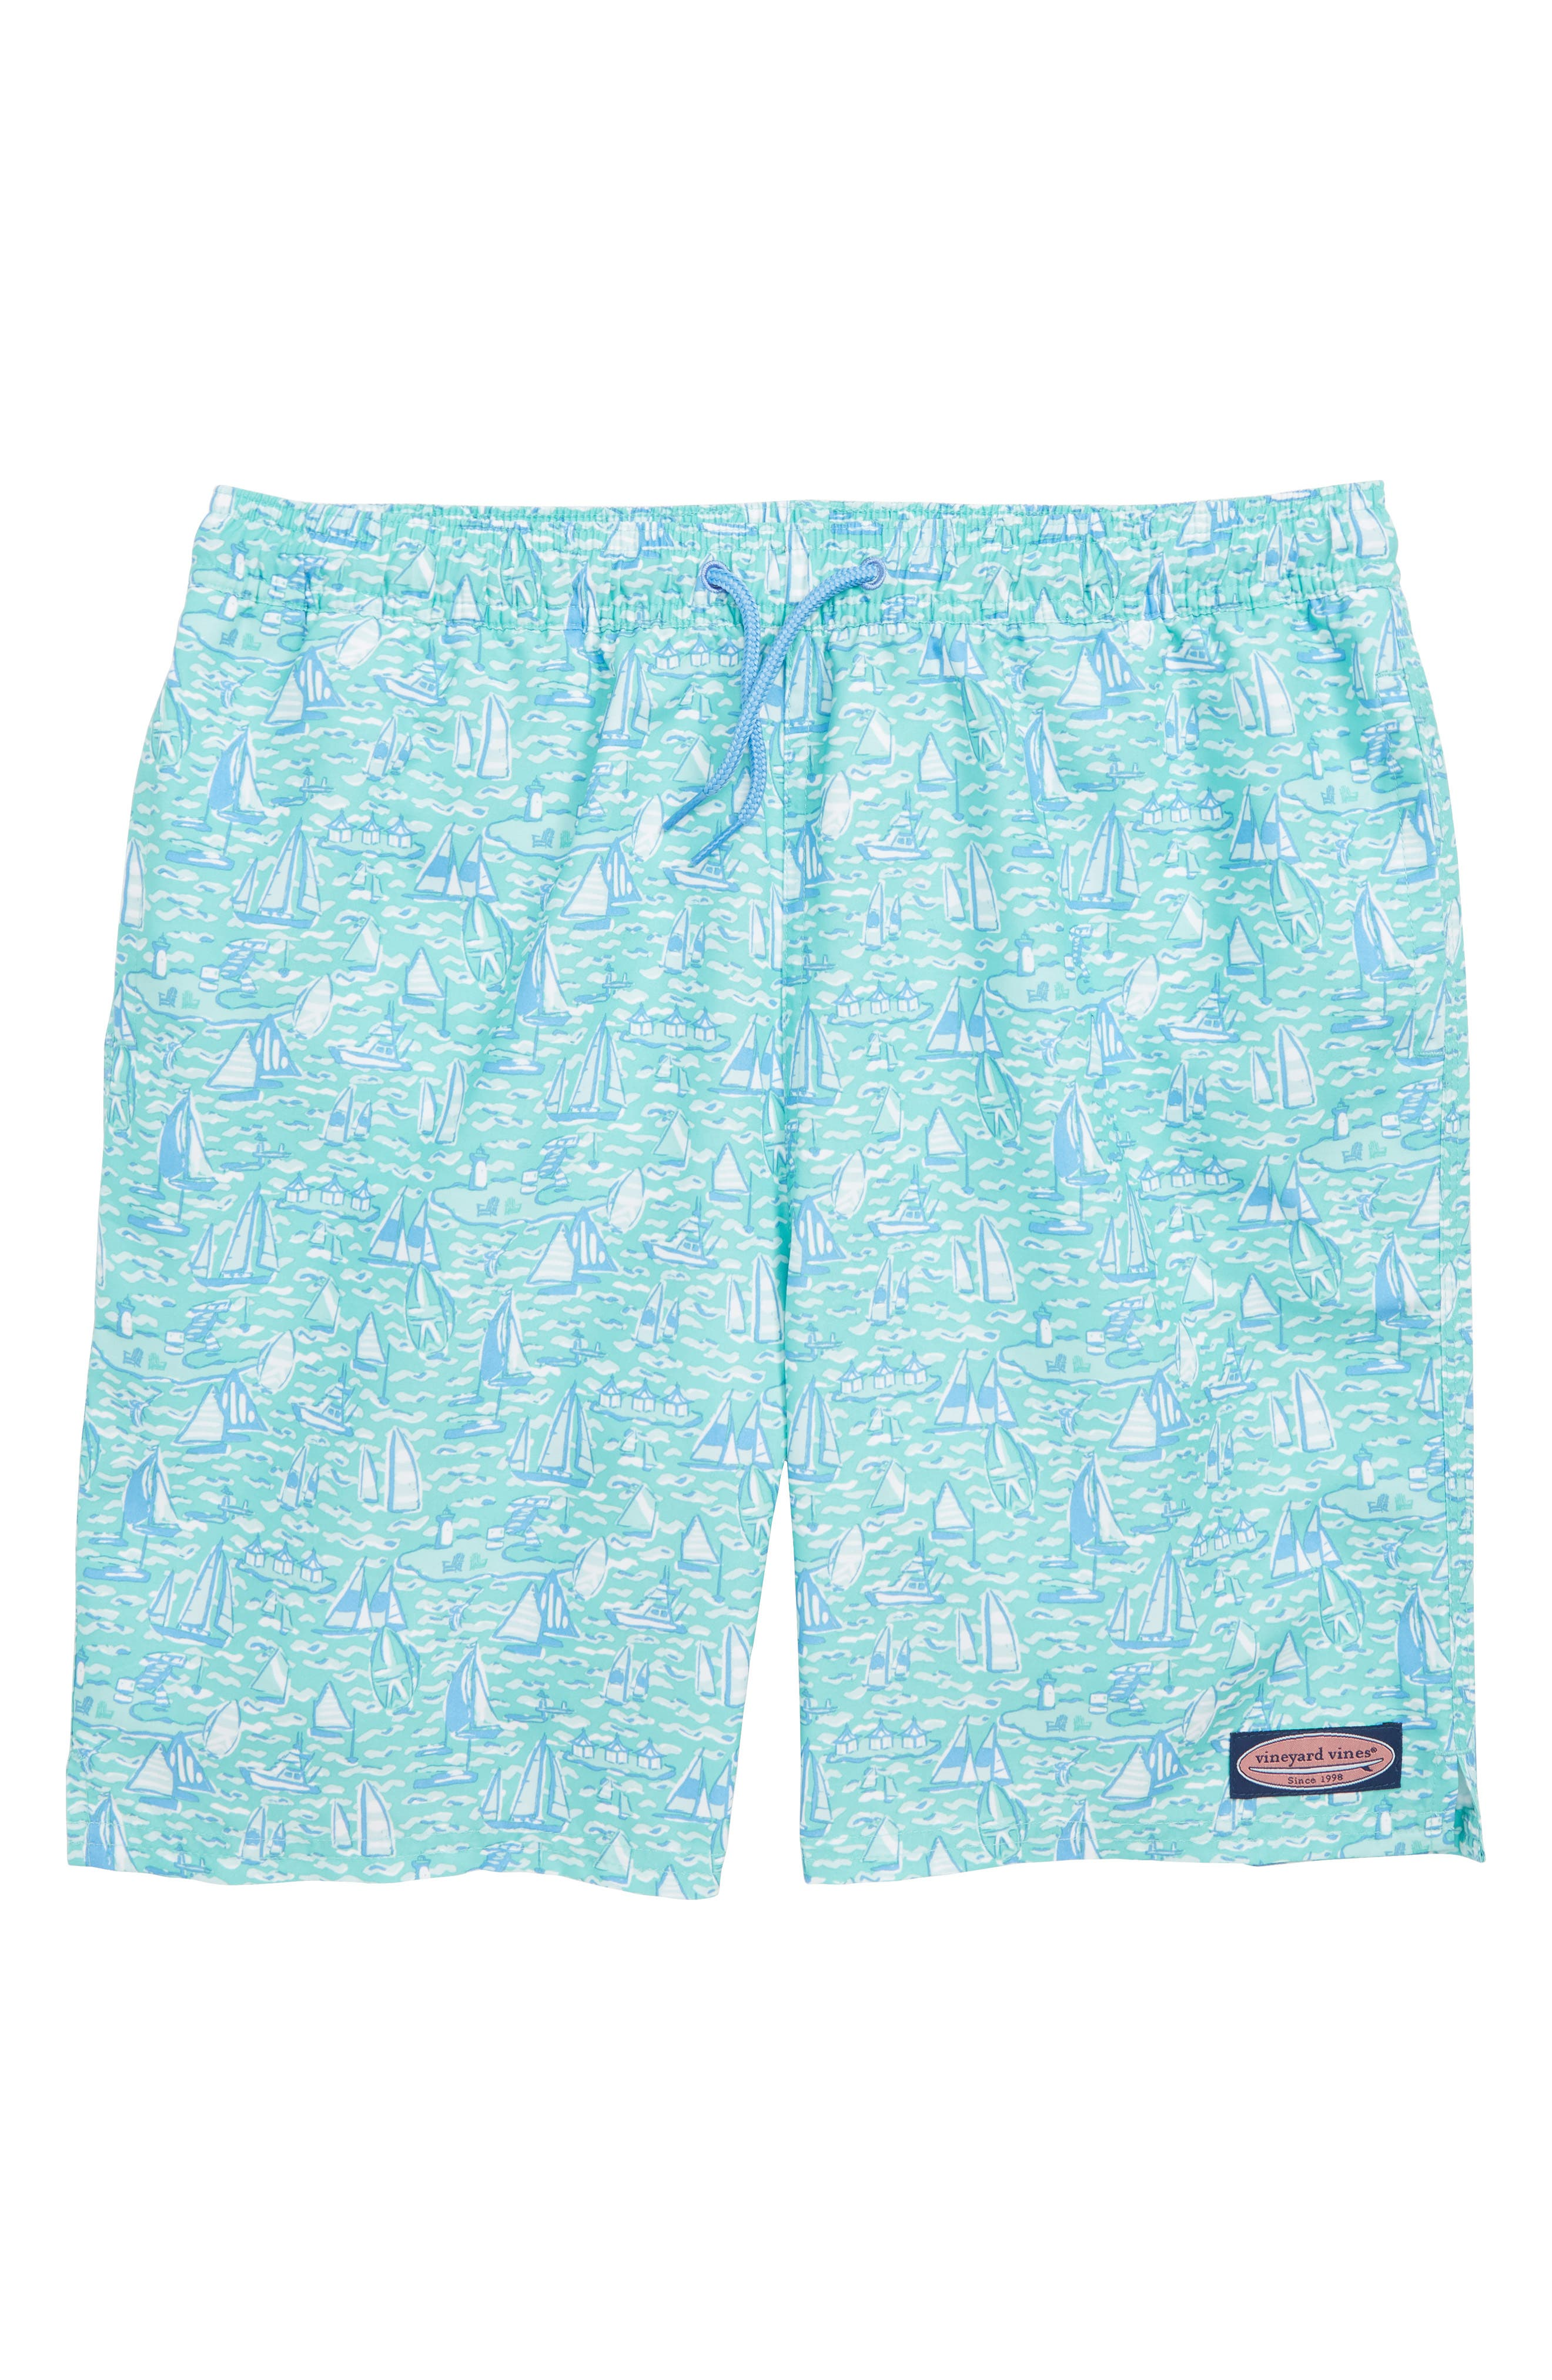 Chappy Sailing the Vineyard Swim Trunks,                             Main thumbnail 1, color,                             400